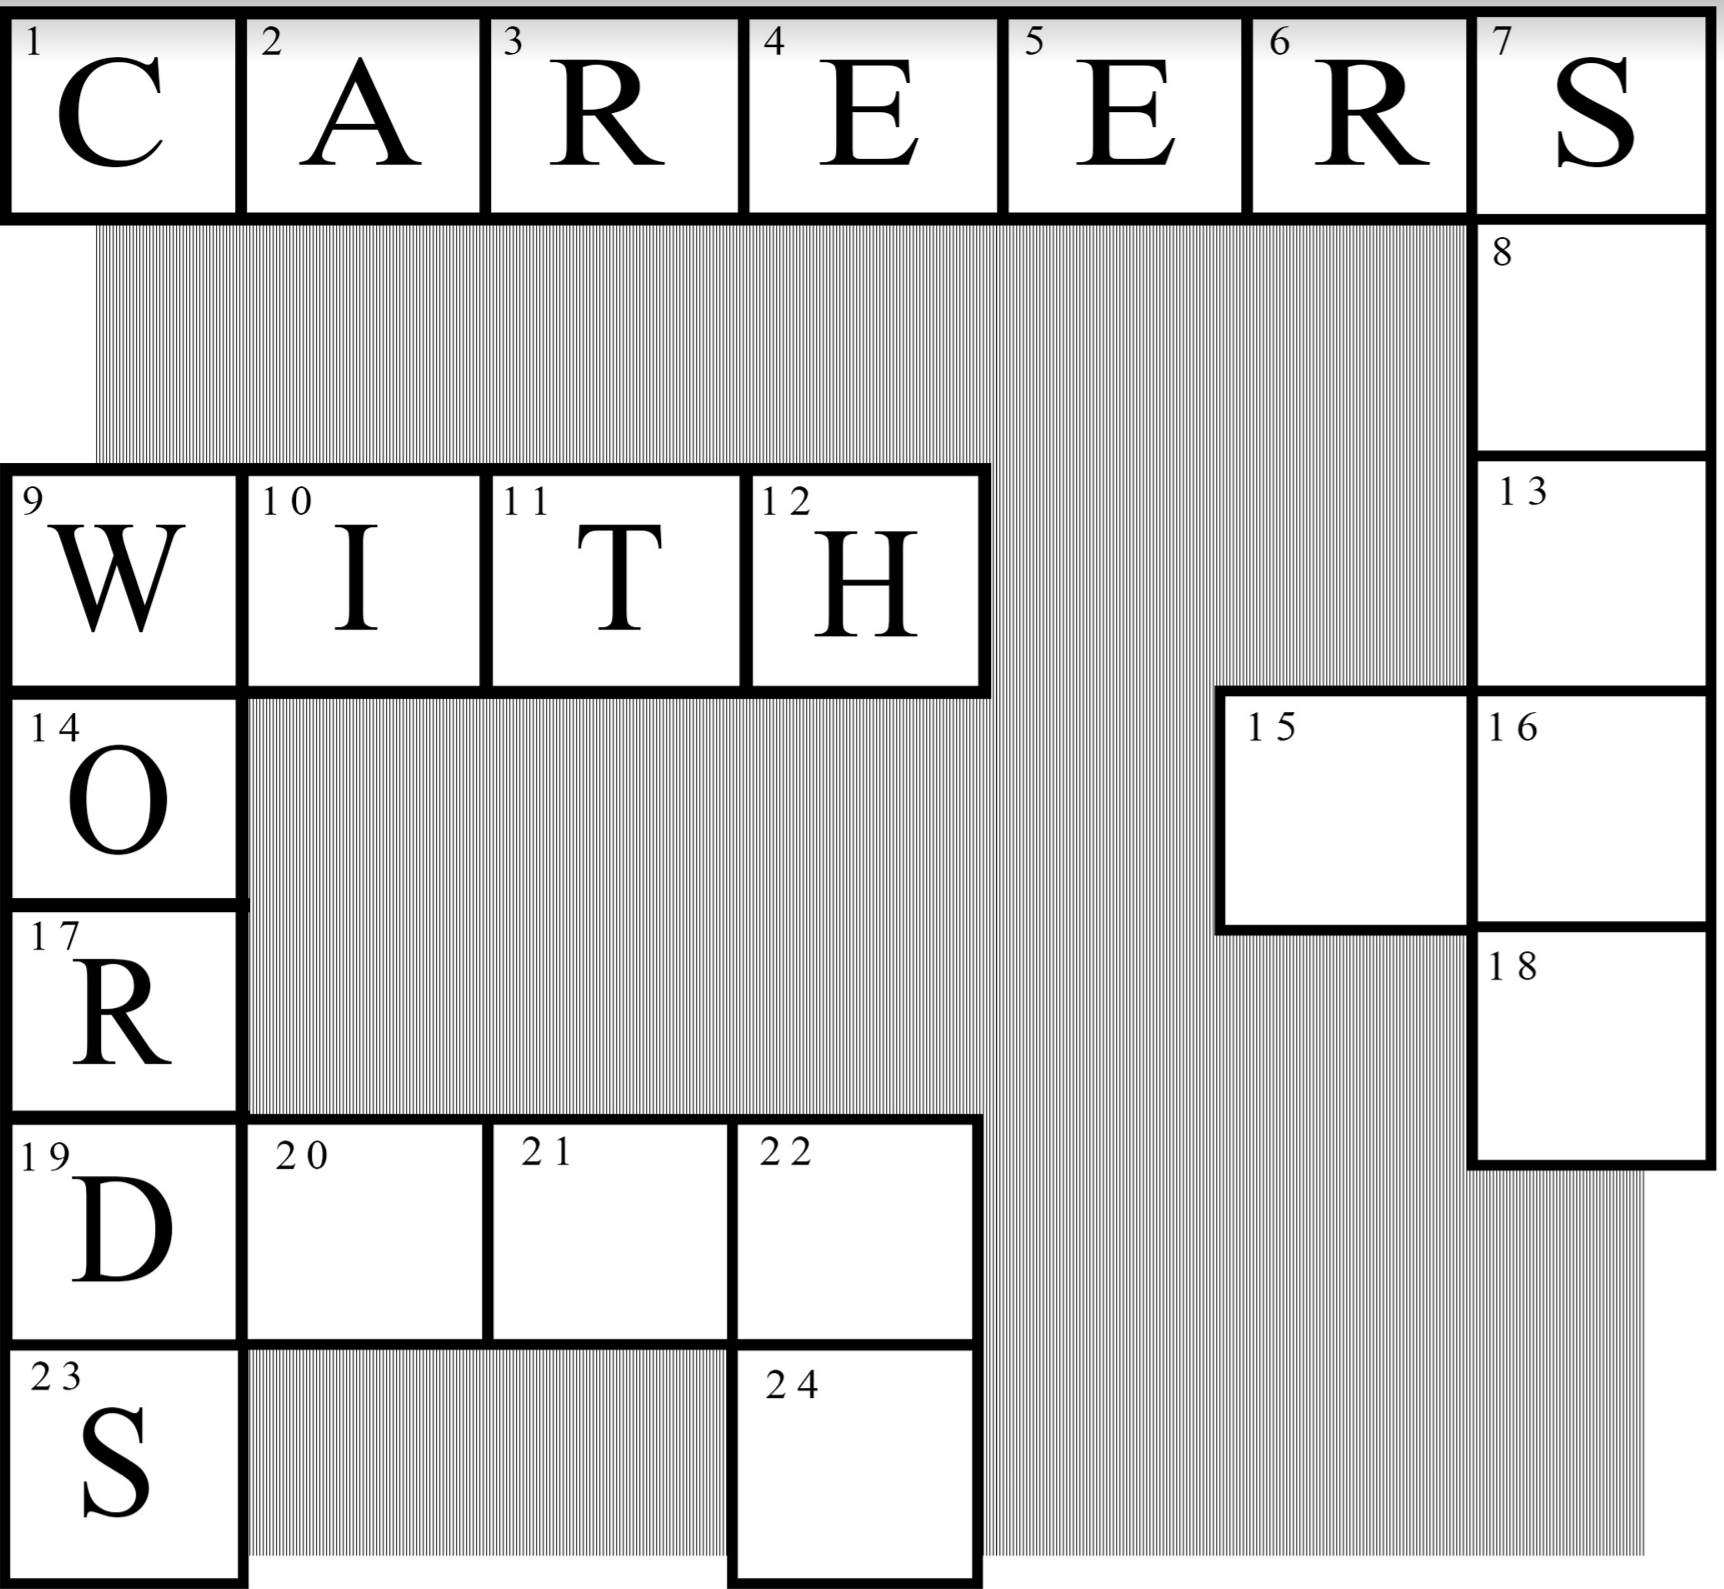 Careers With Words @ Student Services Building, Room 113